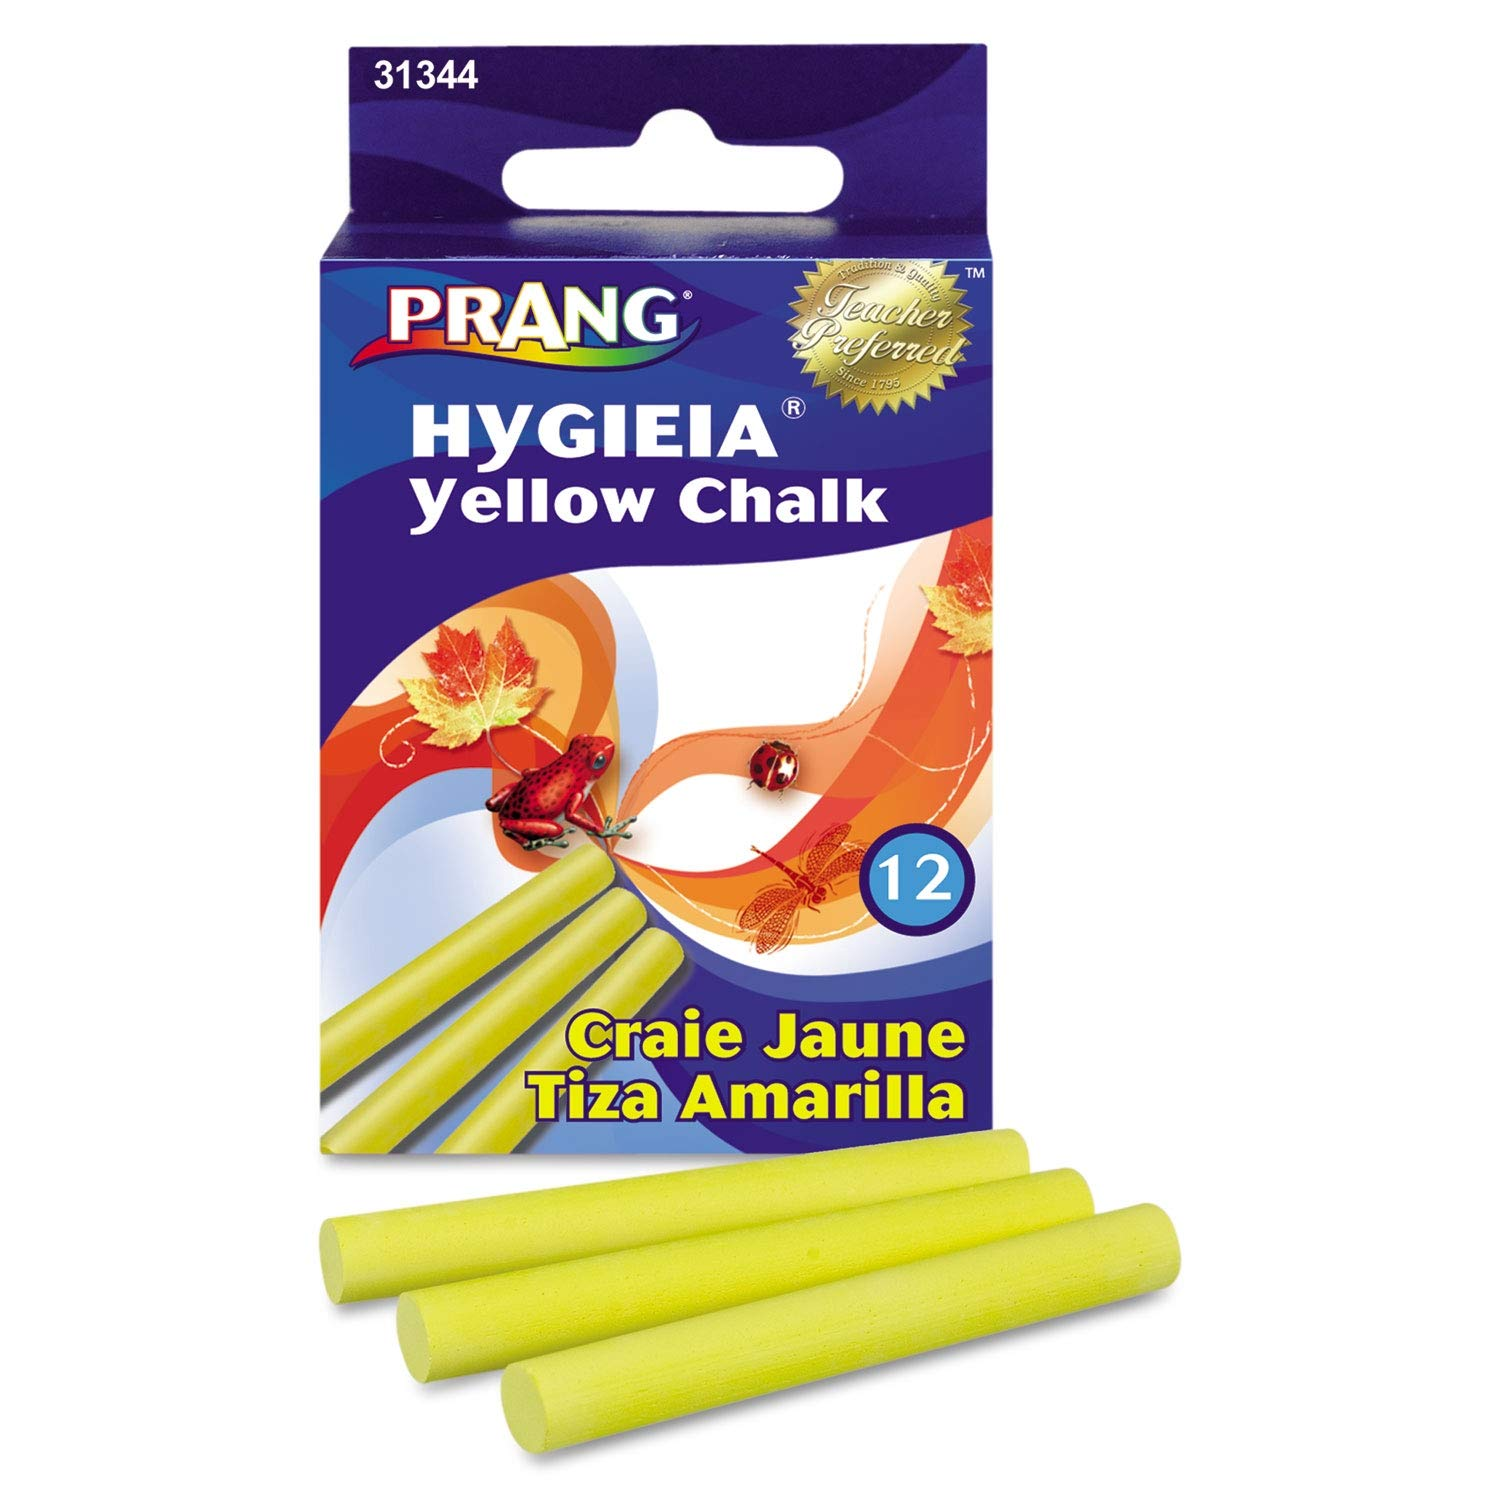 Prang Hygieia Dustless Board Chalk, 3 1/4 x 3/8, Yellow, 12/Box - 31344- Pack of 20 by Prang